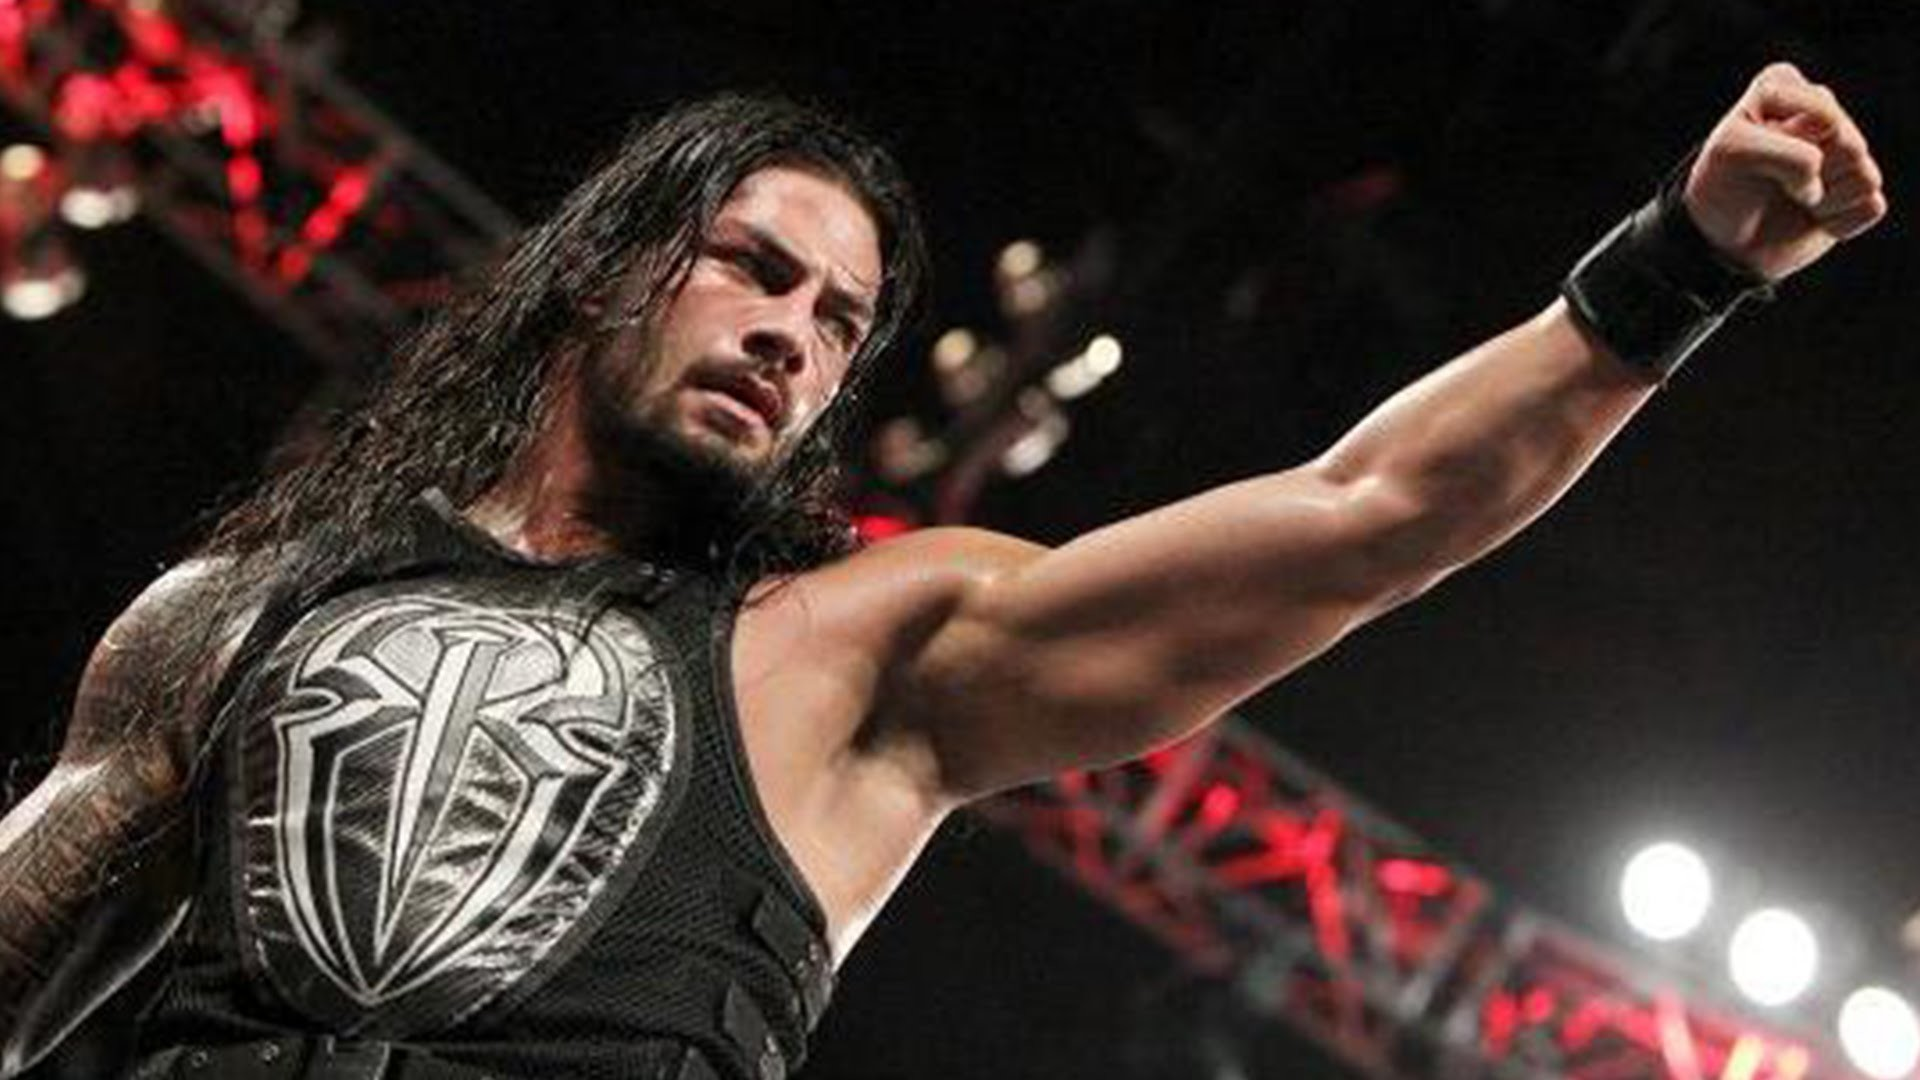 WWE EXTREME RULES 2015 WATCH FULL SHOW ft. Roman Reigns, BigShow, John  Cena, Rusev, Seth Rollins